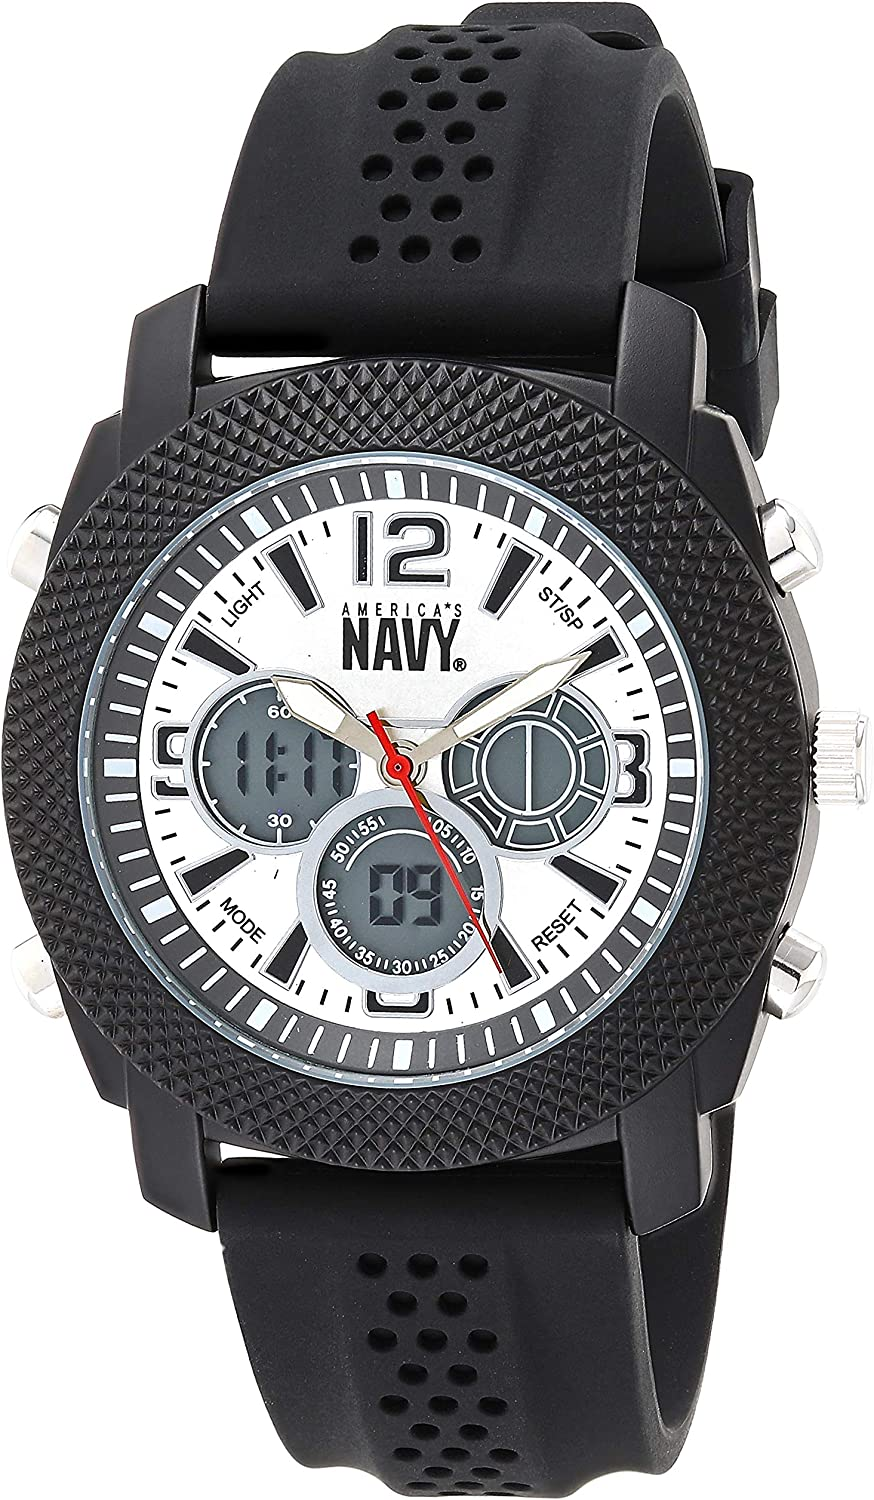 U.S. Military Men s Analog-Digital Chronograph Black Silicone Strap Watch by Wrist Armor